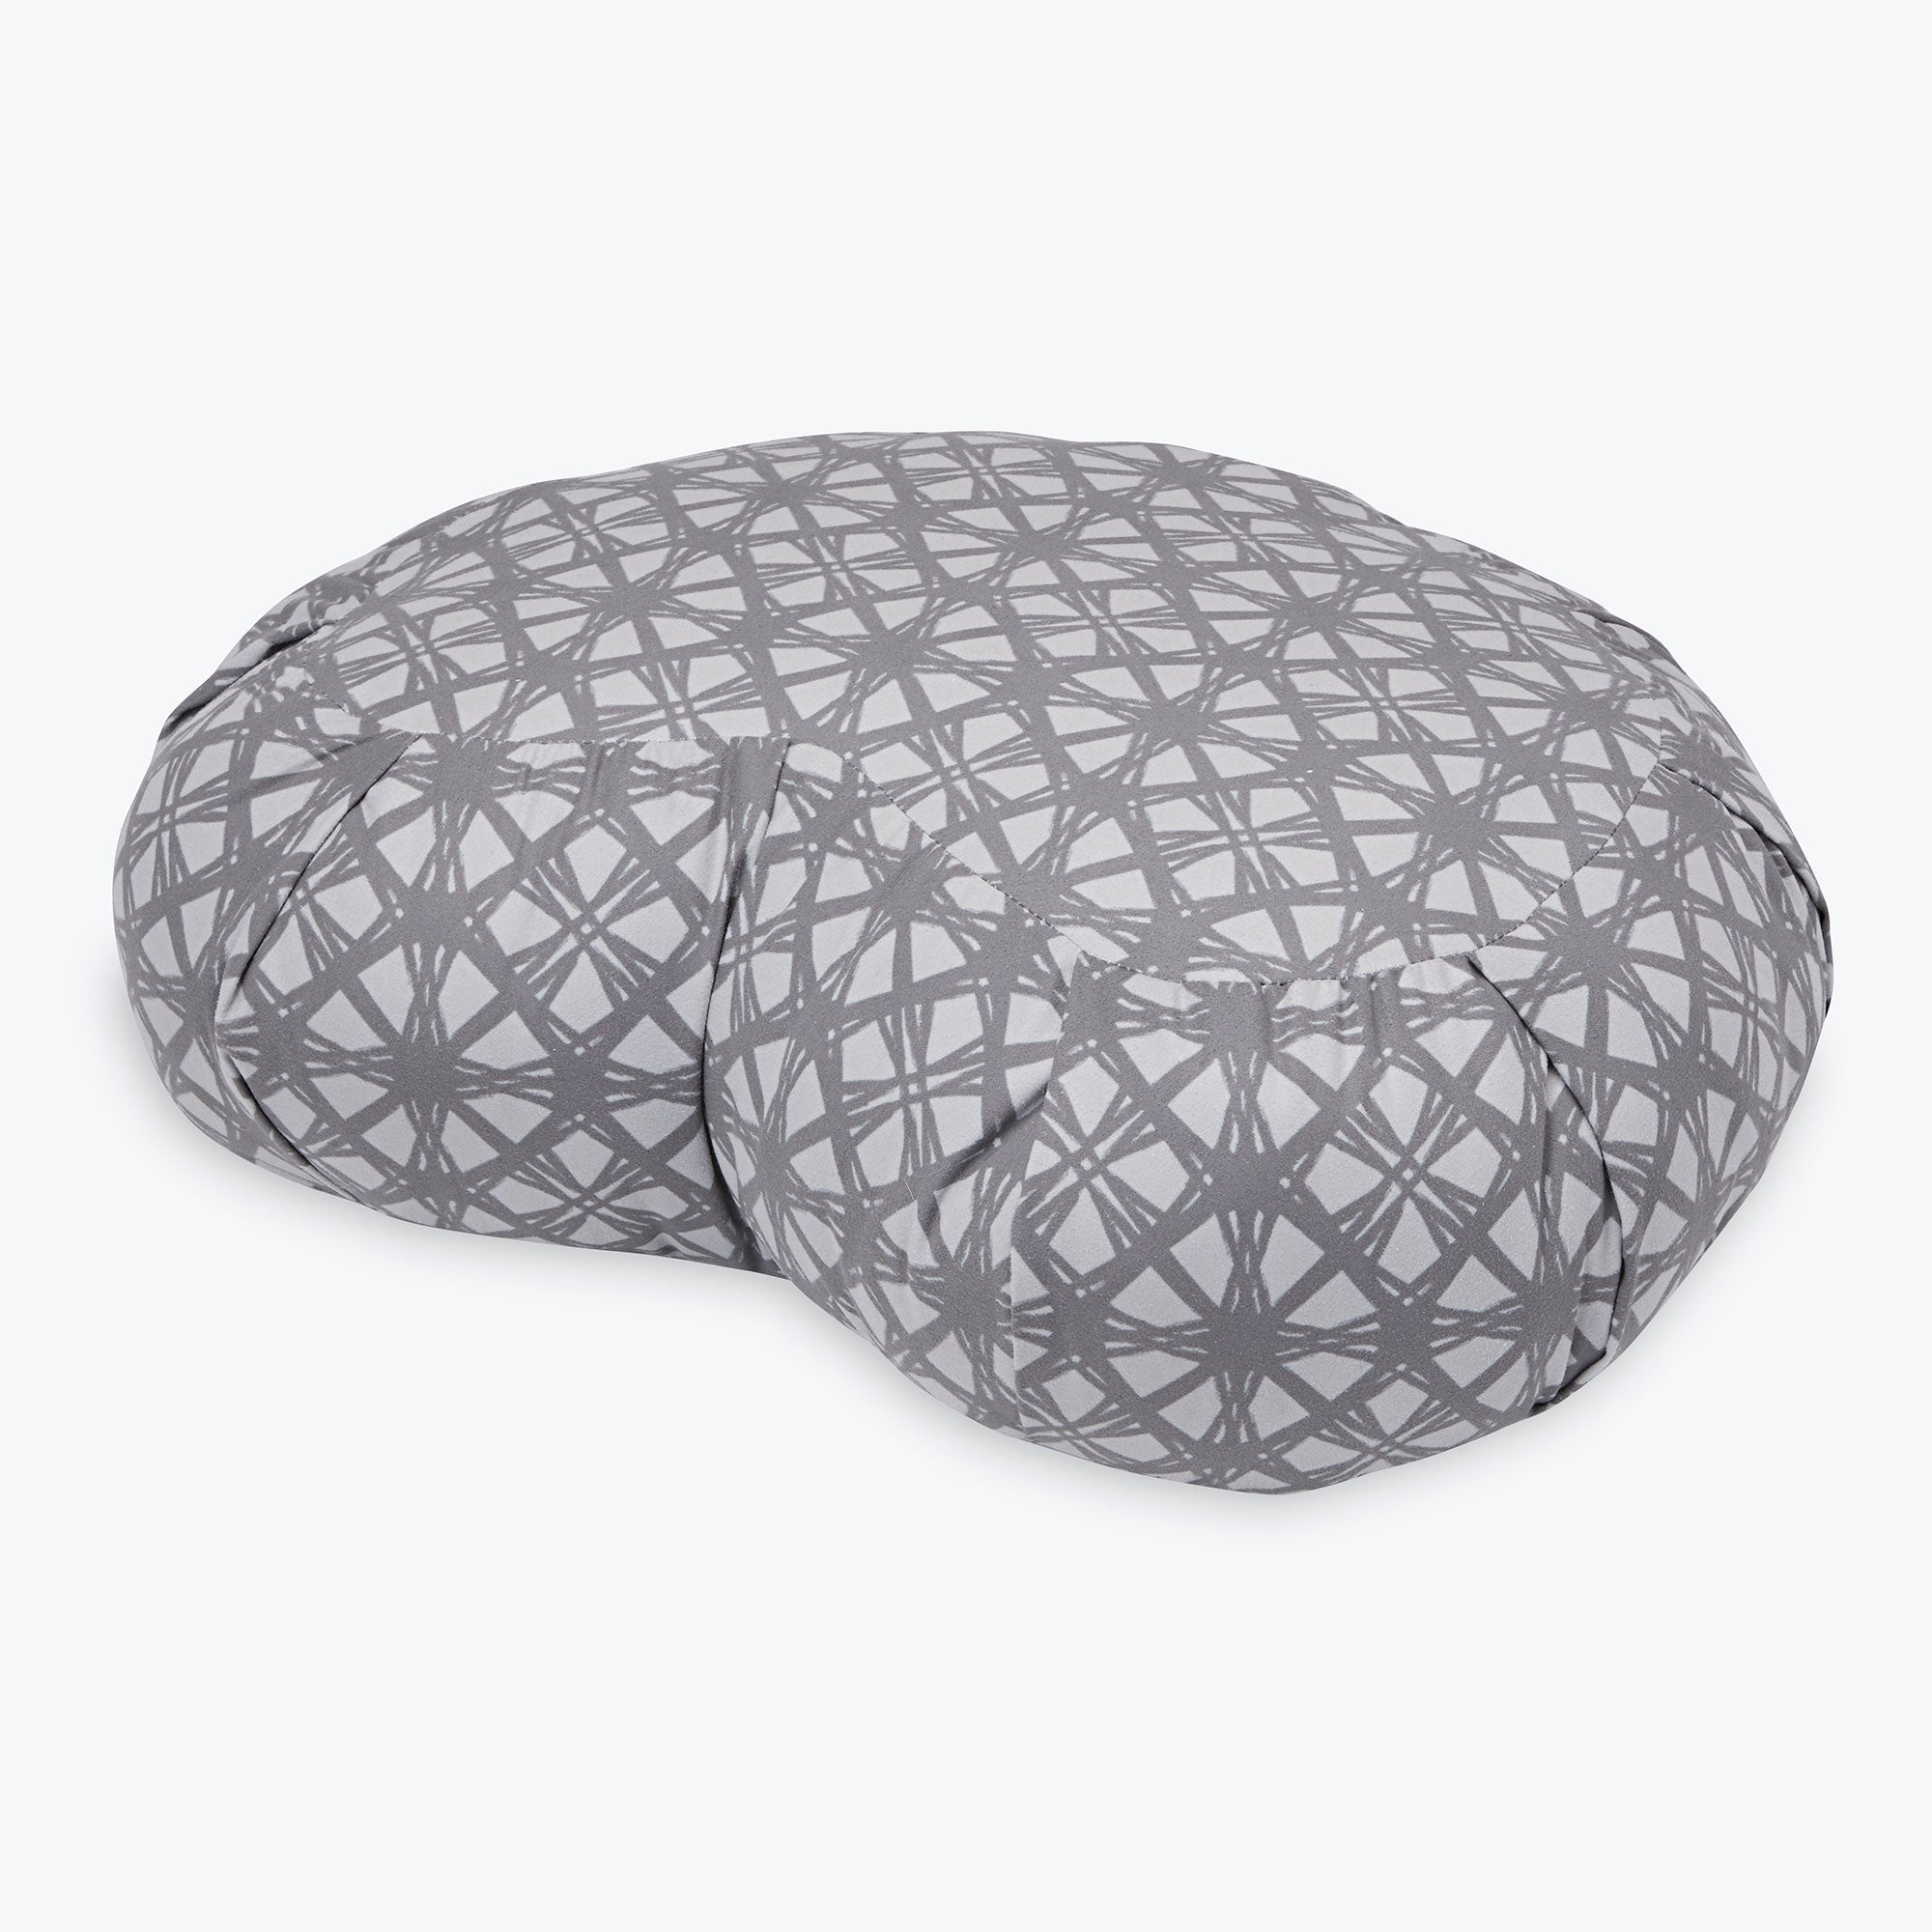 Image of Crescent Meditation Cushion